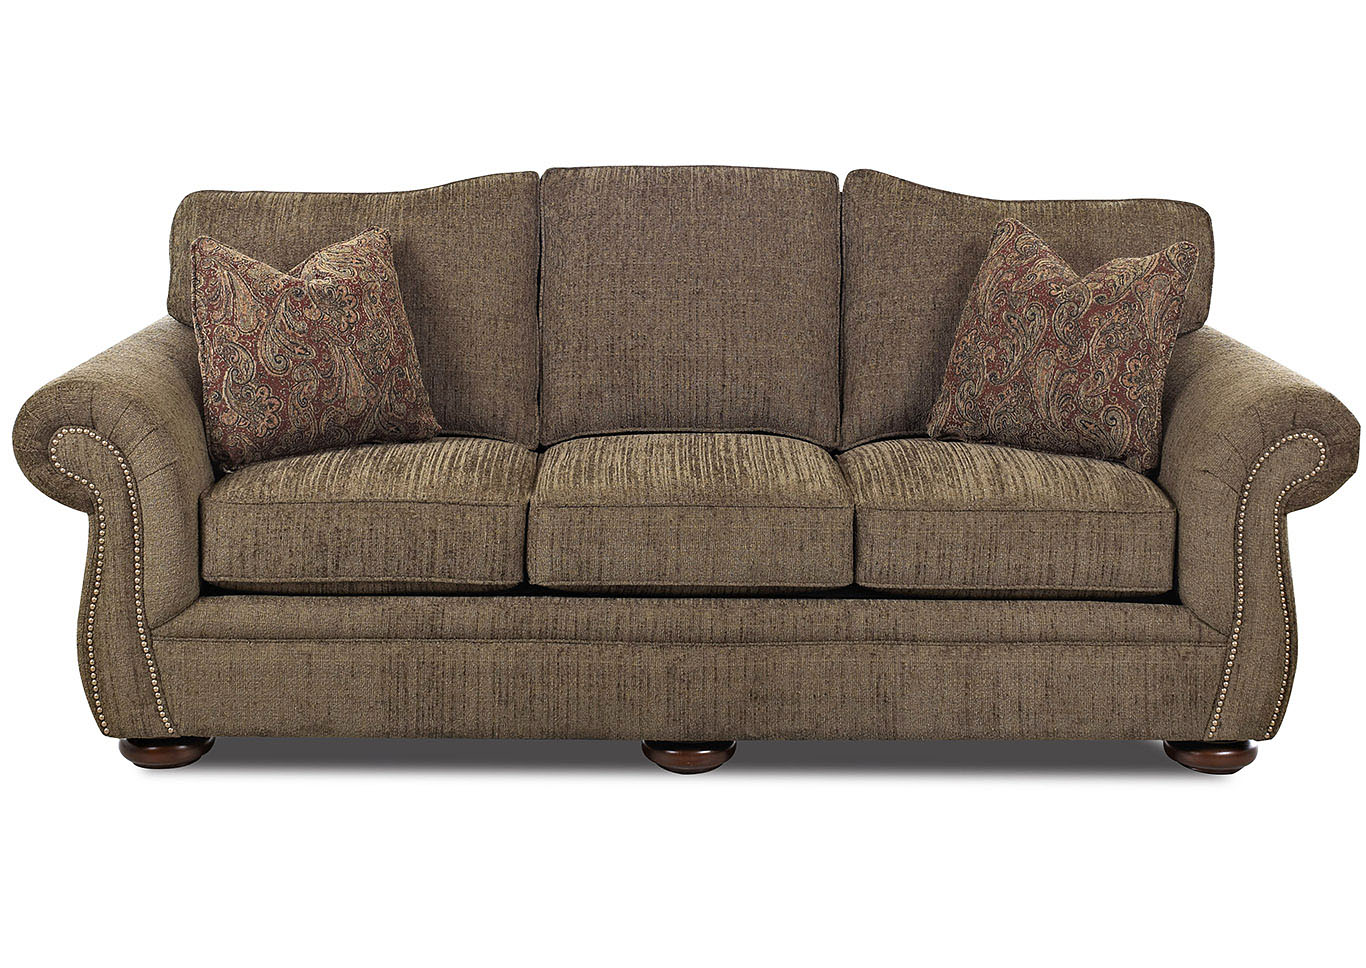 Platter Street Brown Stationary Fabric Sofa,Klaussner Home Furnishings